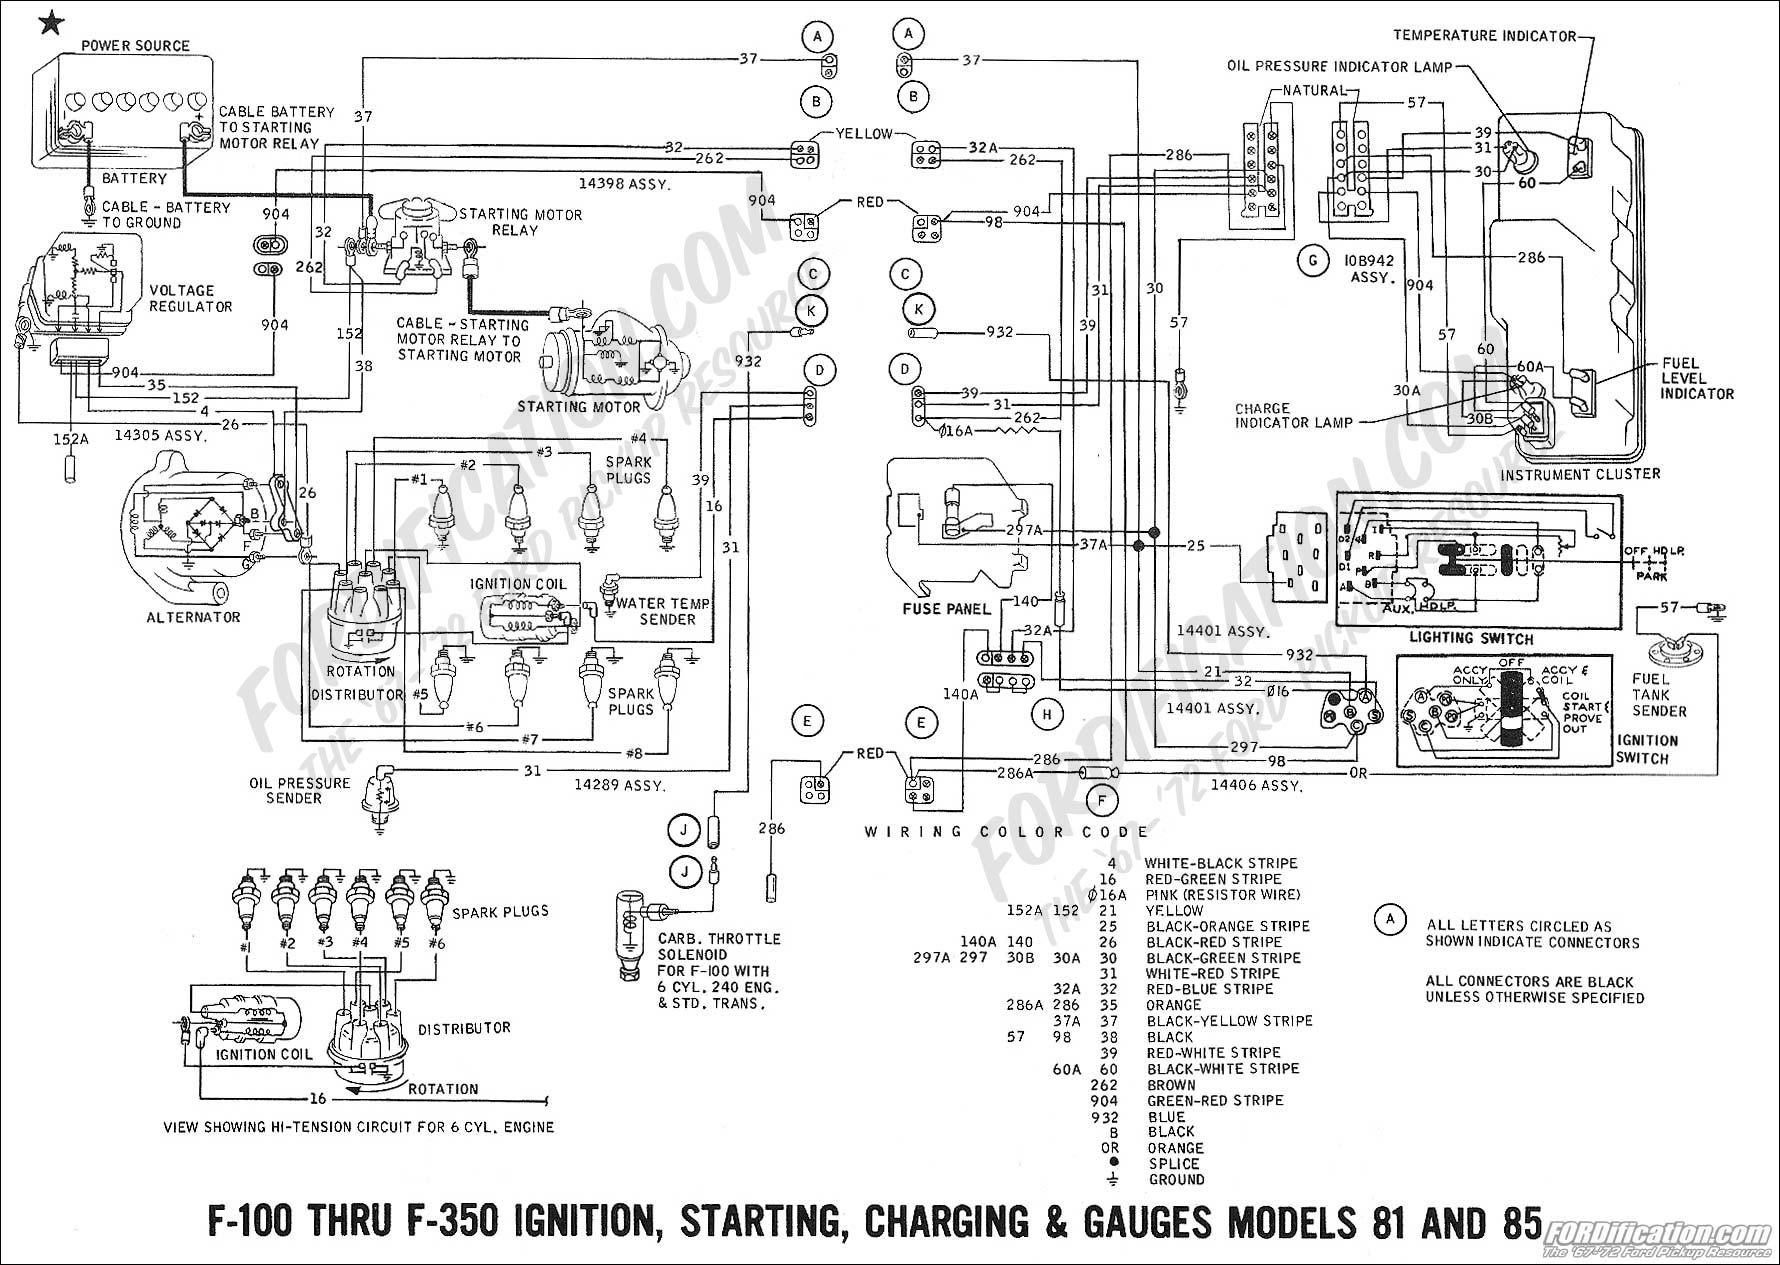 wiring 1969charging2?qualityd806stripdall ford e350 wiring diagram efcaviation com 1998 ford e350 fuse box diagram at alyssarenee.co